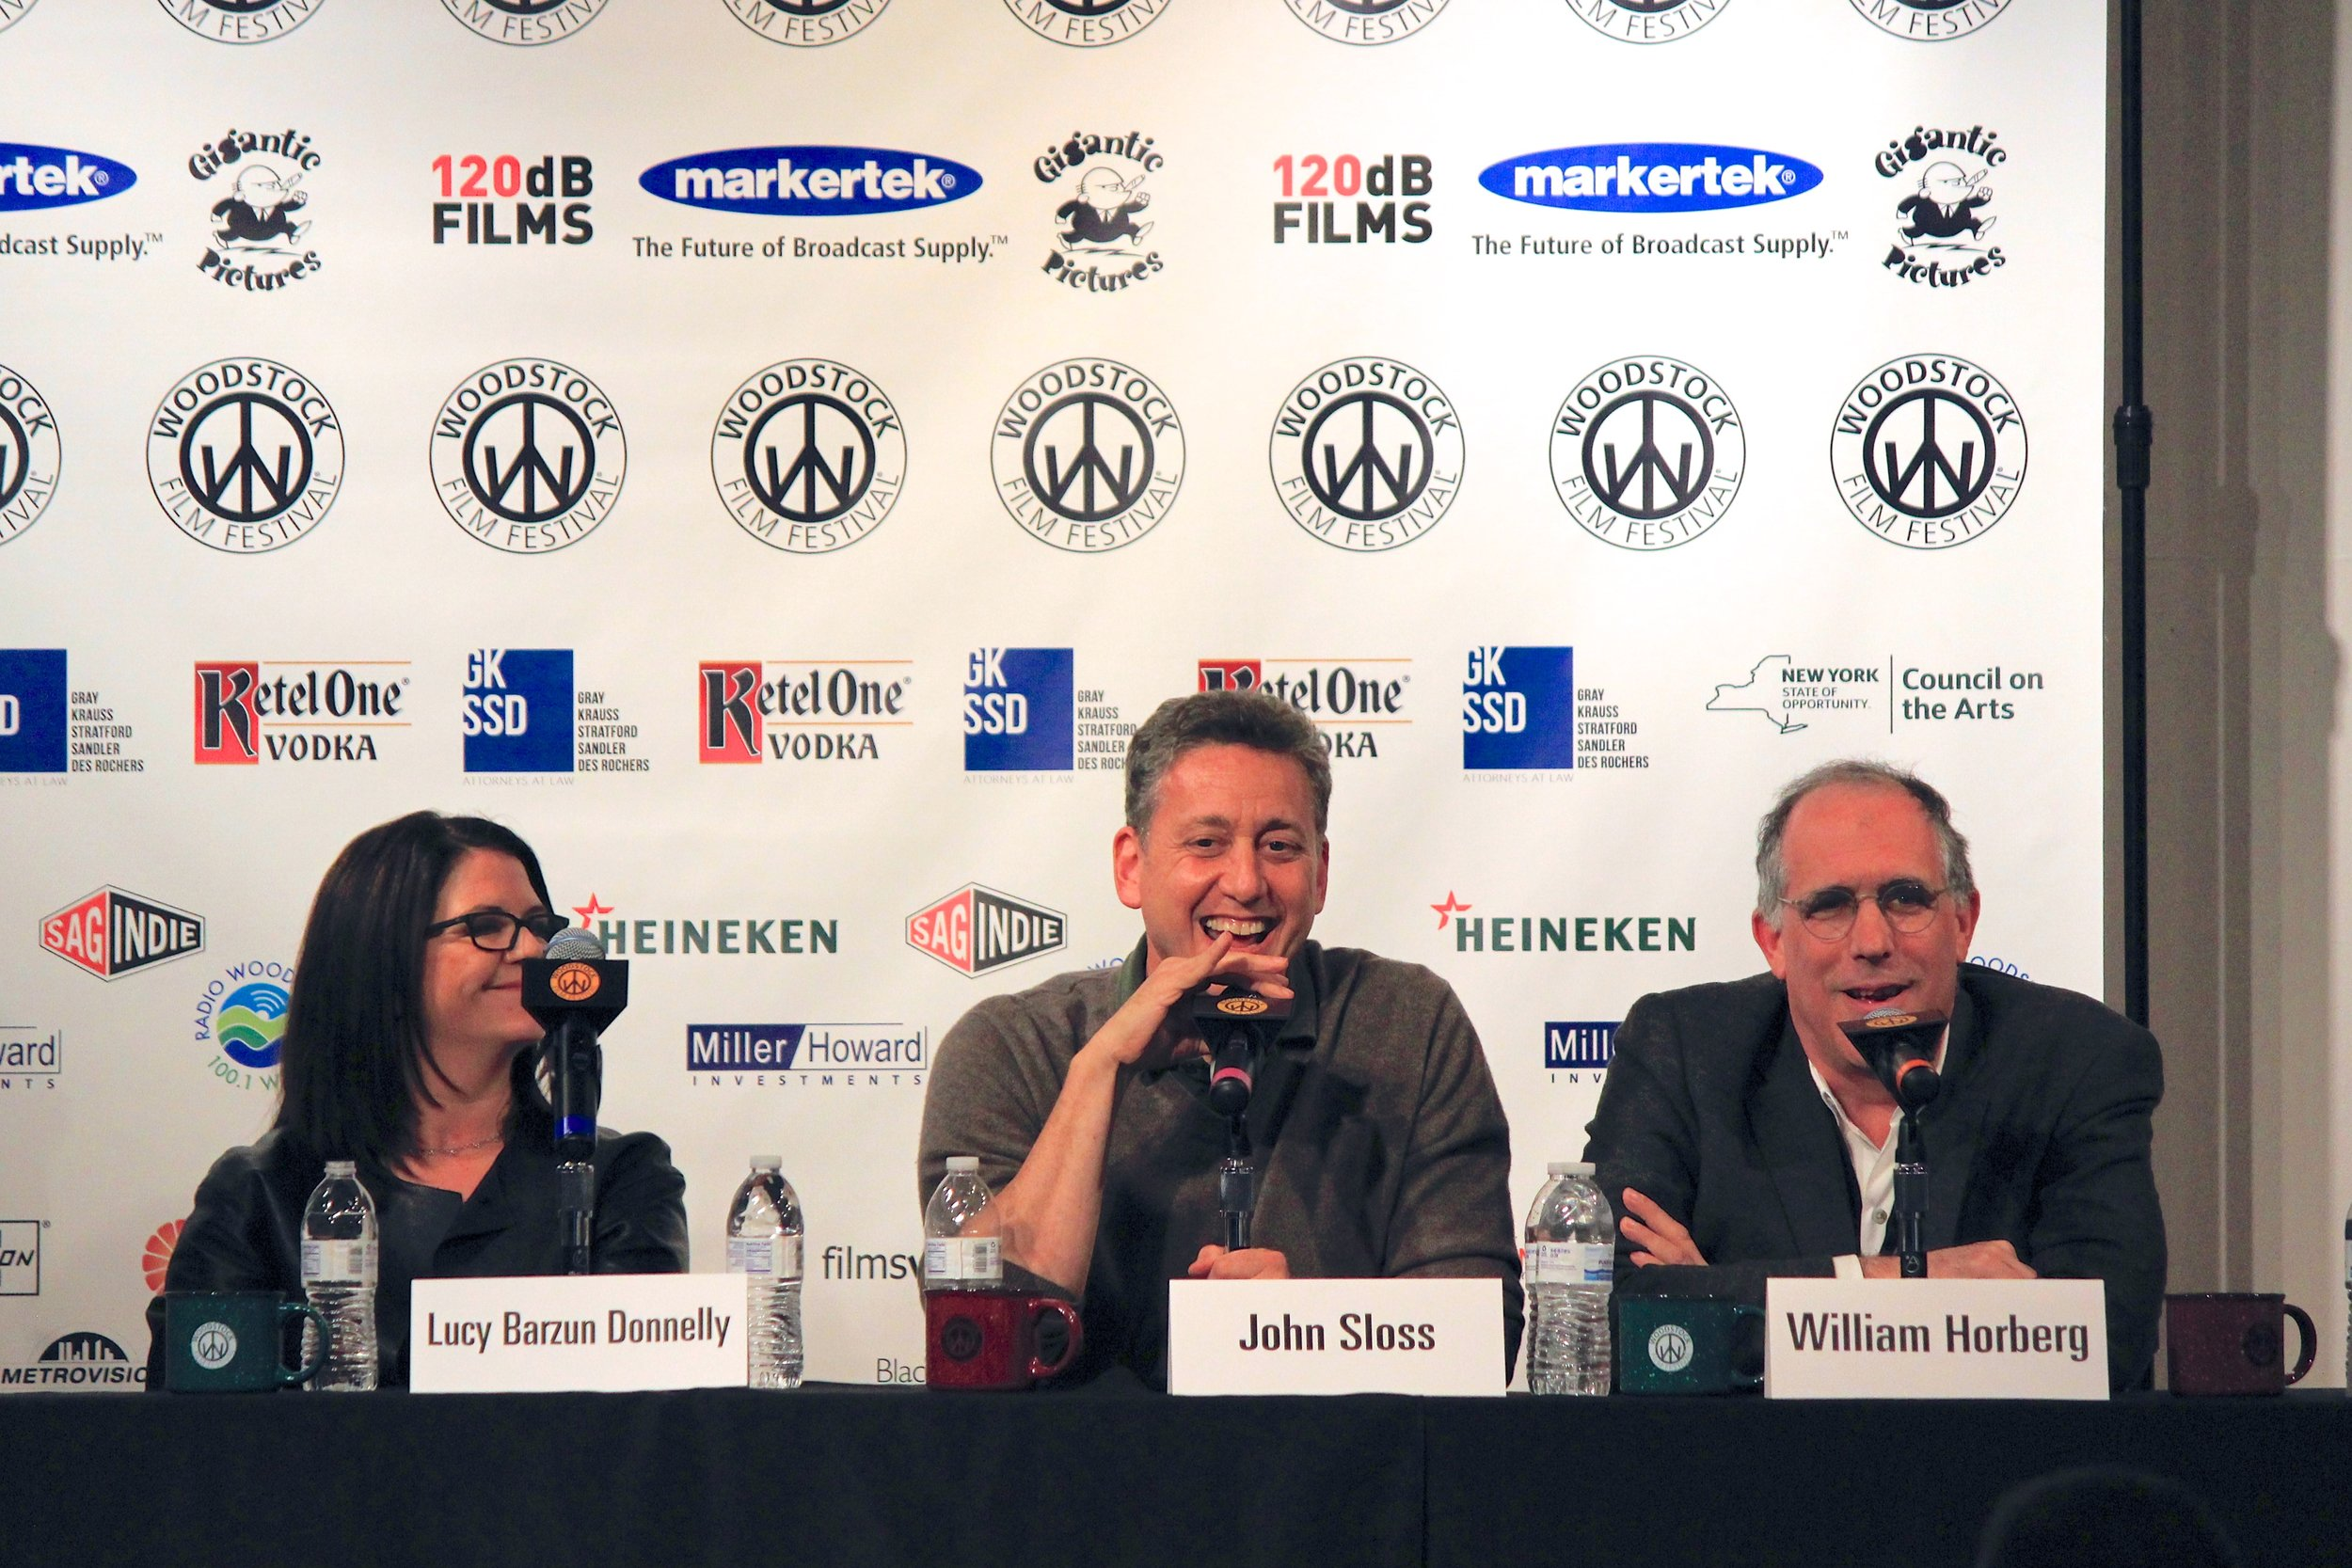 Producers on Producing Panel